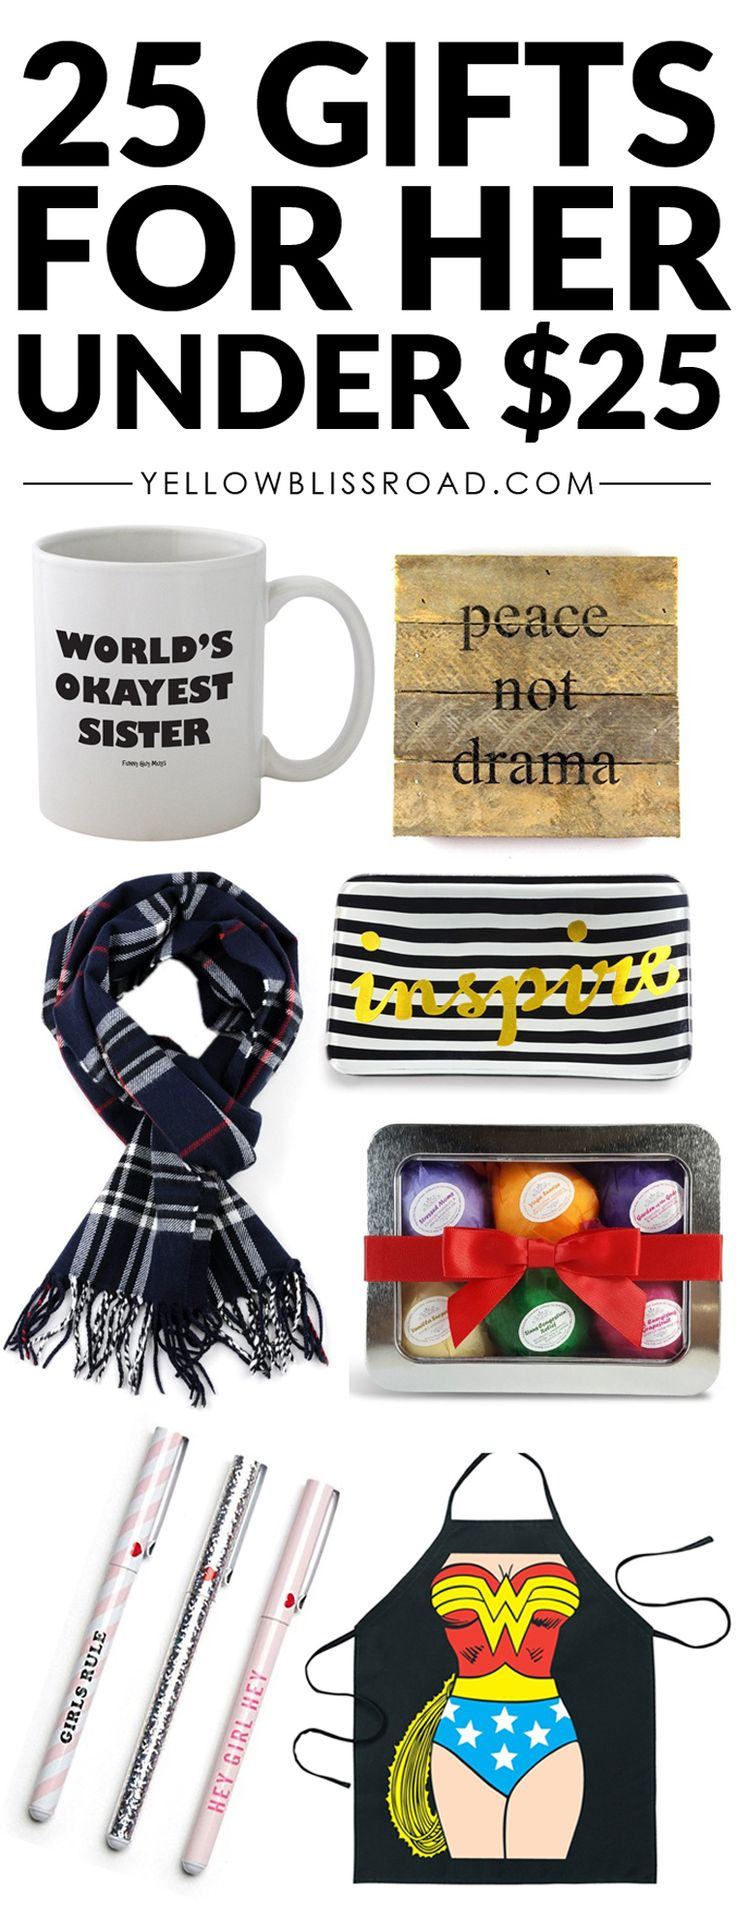 25 gifts for her under $25 | Easy Gift ideas for Mom, sister, aunts, cousins and friends.